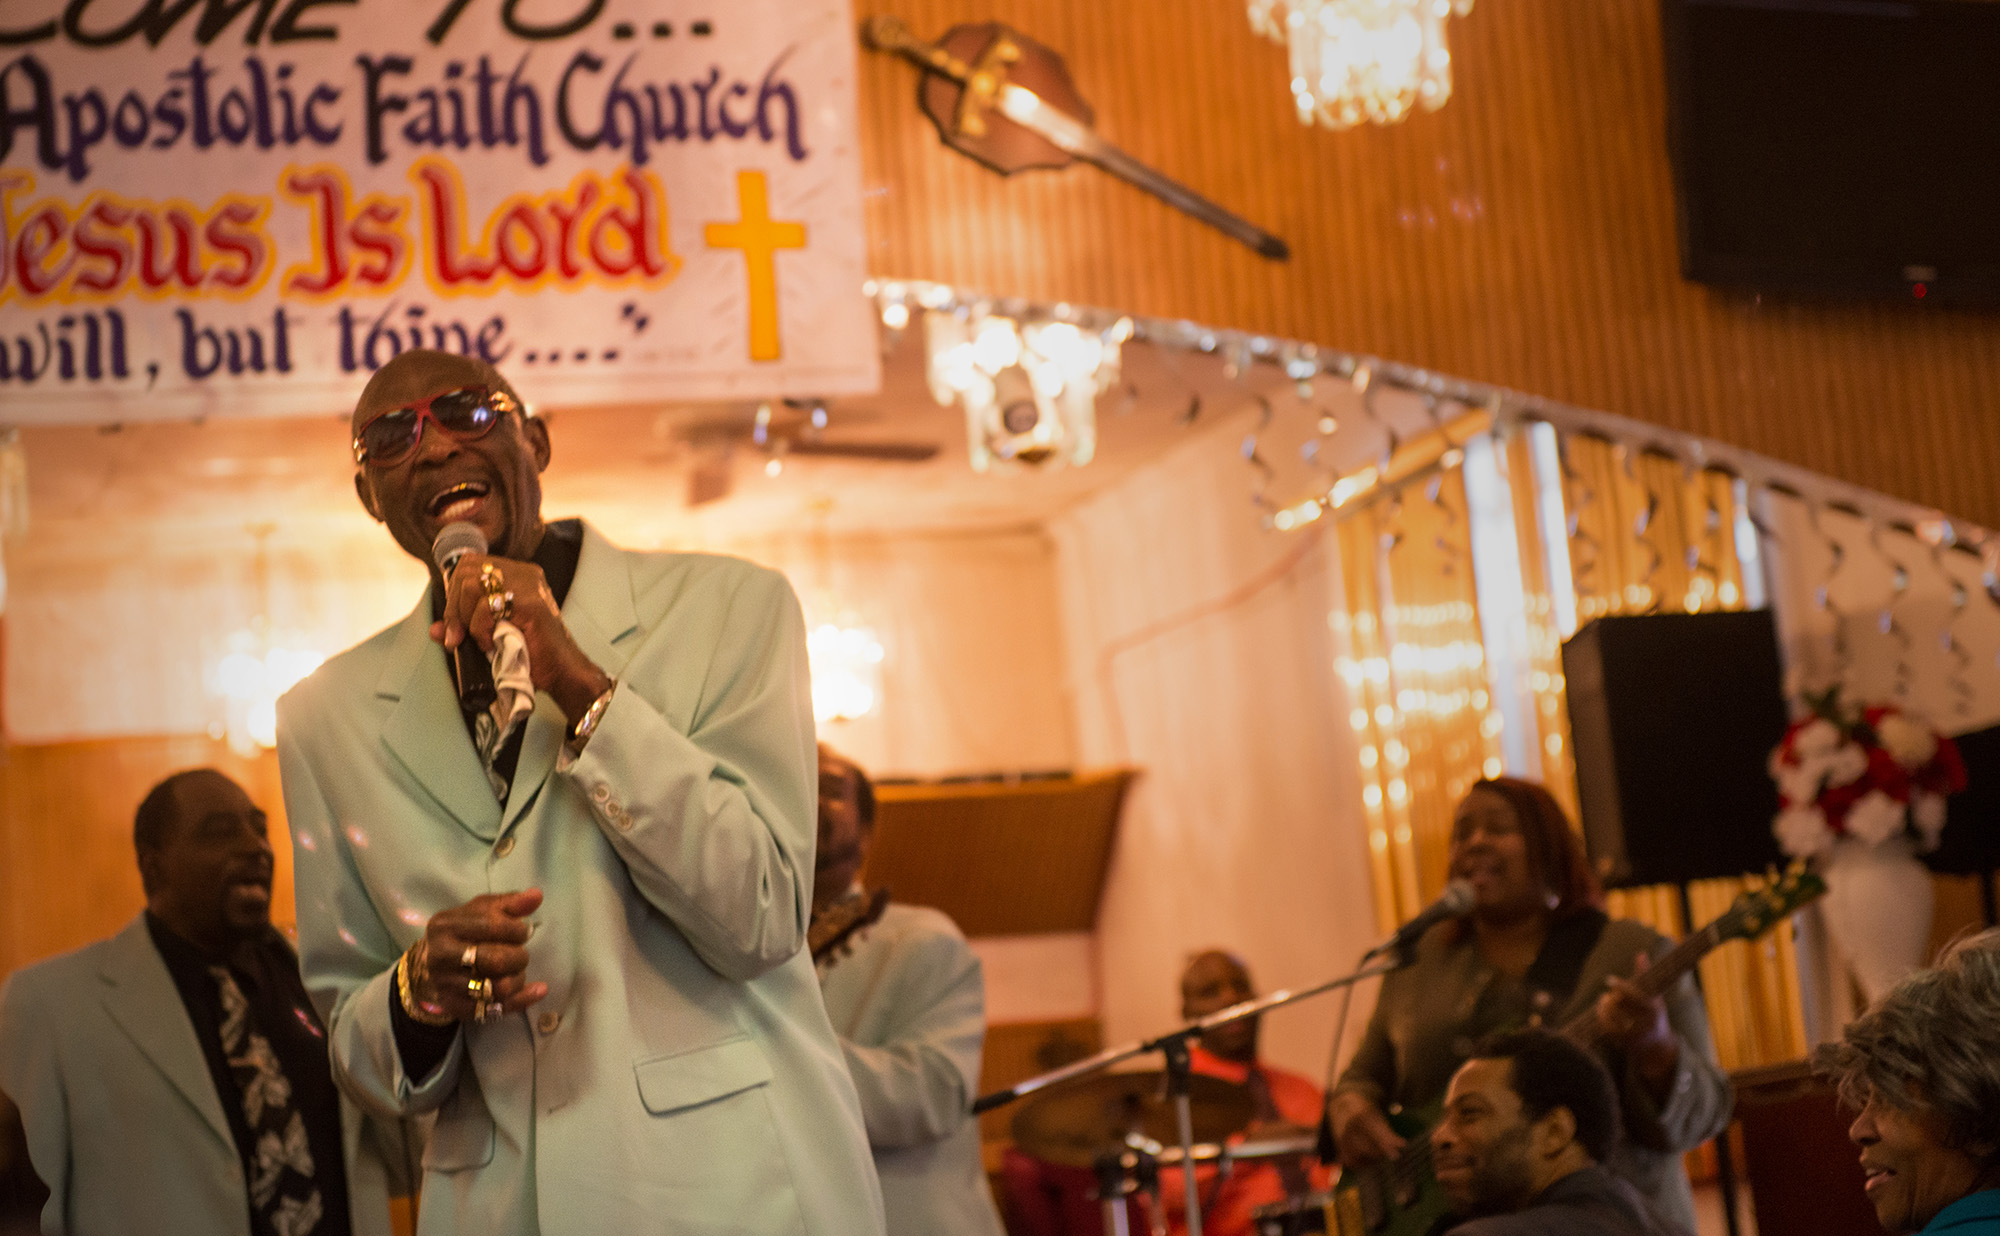 Local gospel quartets gather for fellowship and faith on Chicago's South Side.